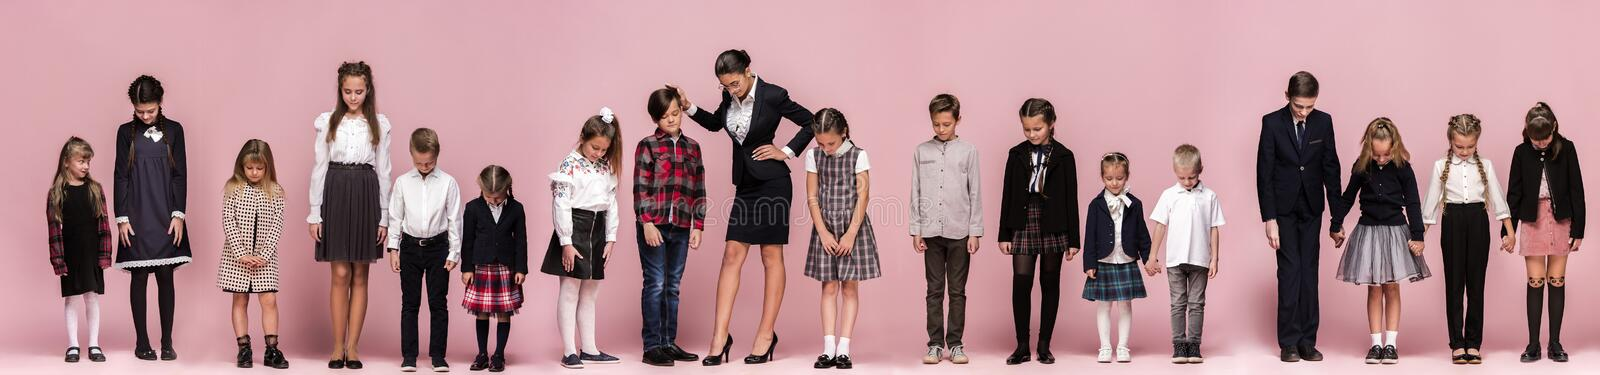 Cute stylish children on pink studio background. The beautiful teen girls and boy standing together stock photos